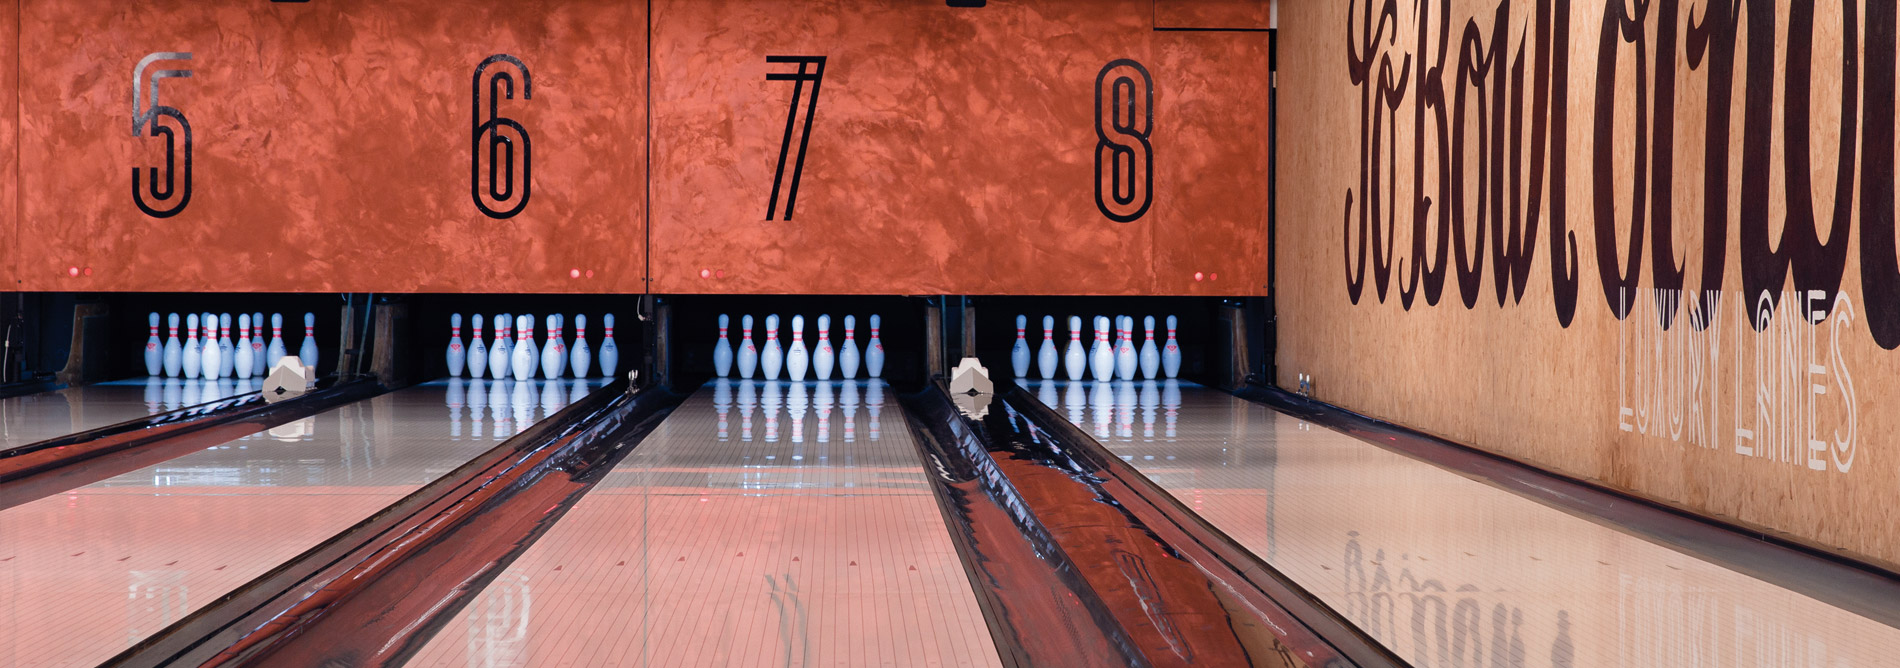 QUBICAAMF-bowling-boutique-Olround-Bowling-banner.jpg